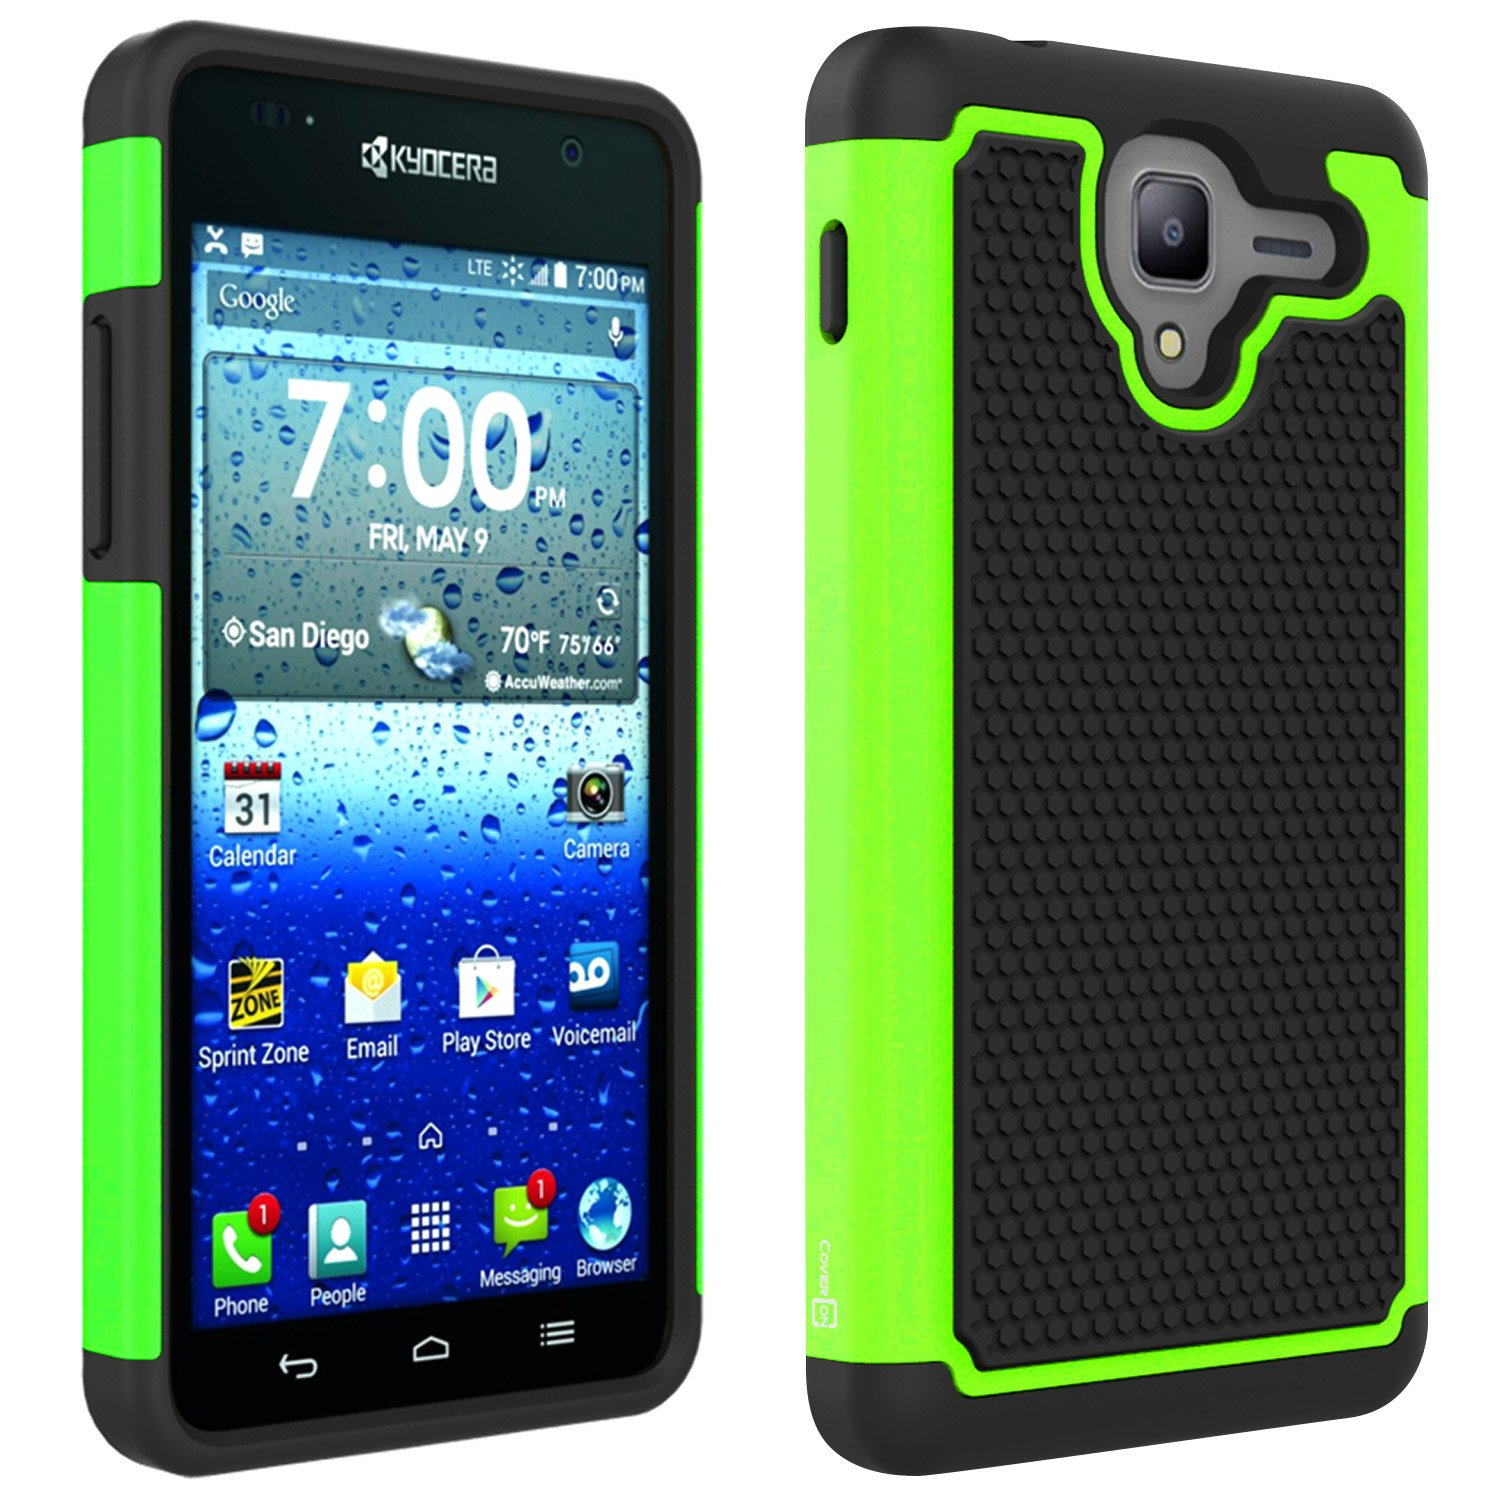 Kyocera Hydro View Case, Hydro Shore Case, Hydro Reach Case Coveron  [hexaguard Series Android How To: Delete Google Voice Search History